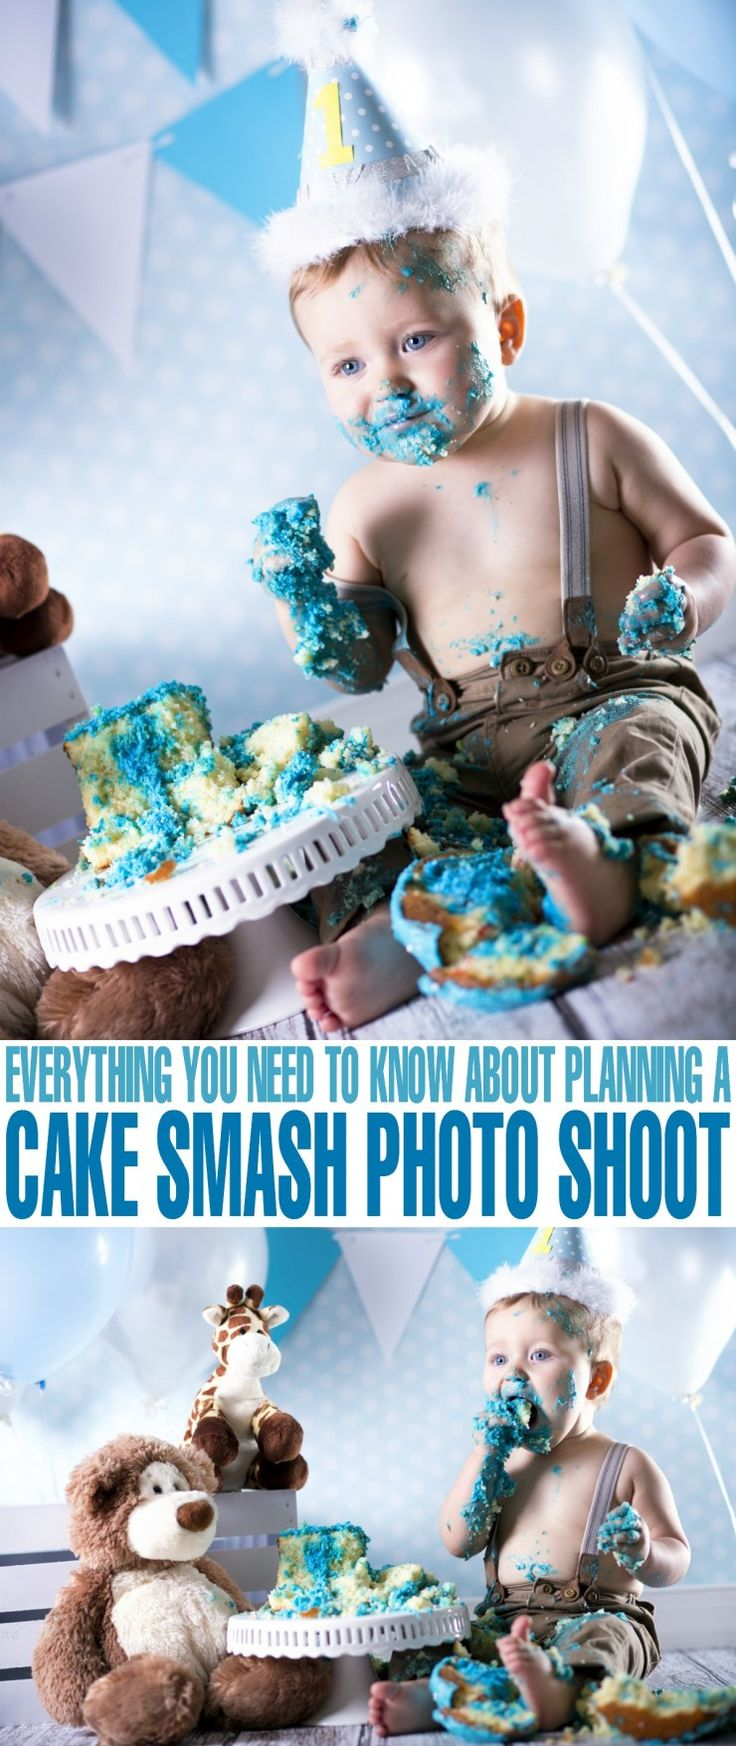 Everything You Need to Know About Planning a Cake Smash Photo Shoot for your baby girl or baby boy on their first birthday!